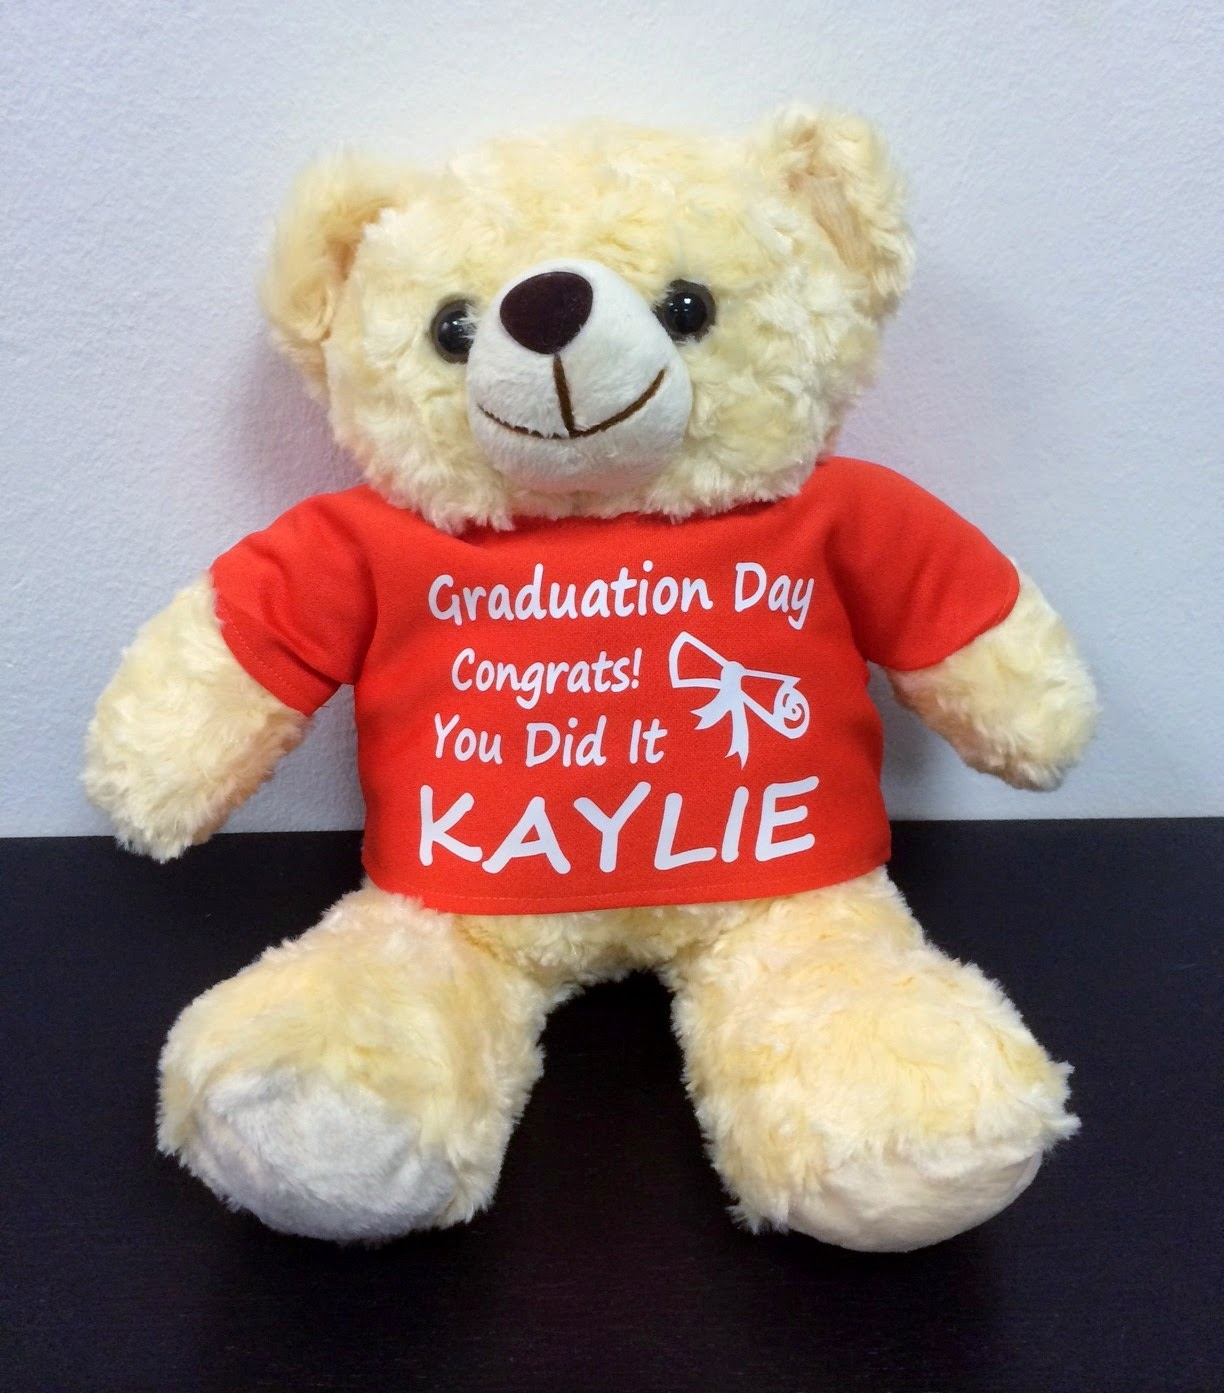 Amazing Personalized Teddy Bears @ $32.90 Each. Printed With Your Name